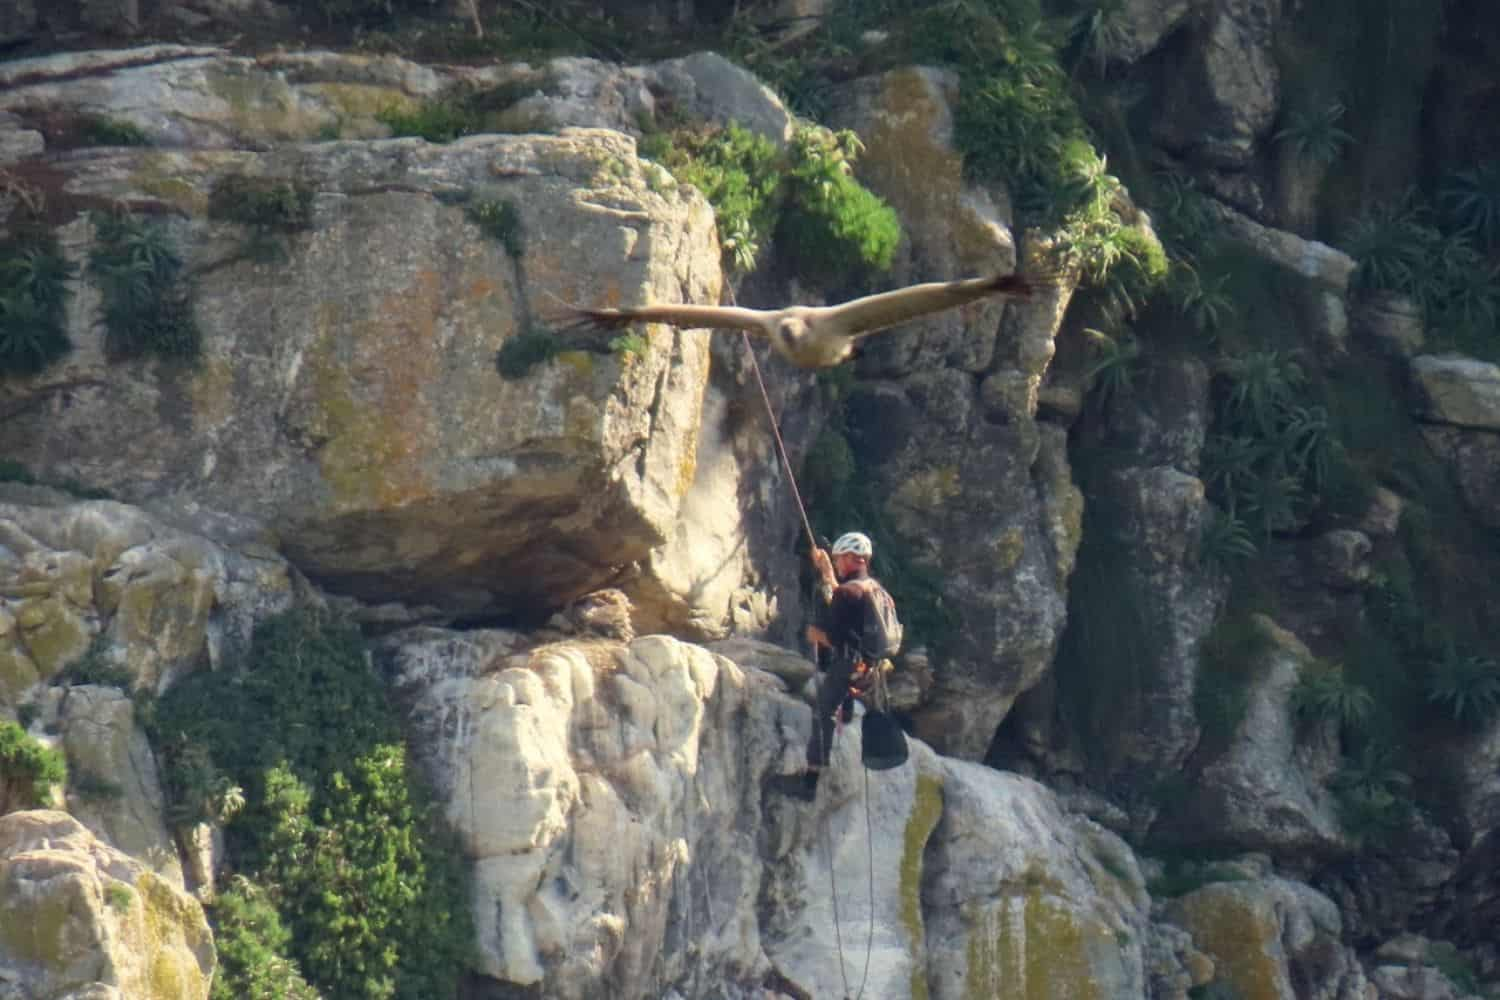 Cape vultures get a lifeline with satellite tracking programme